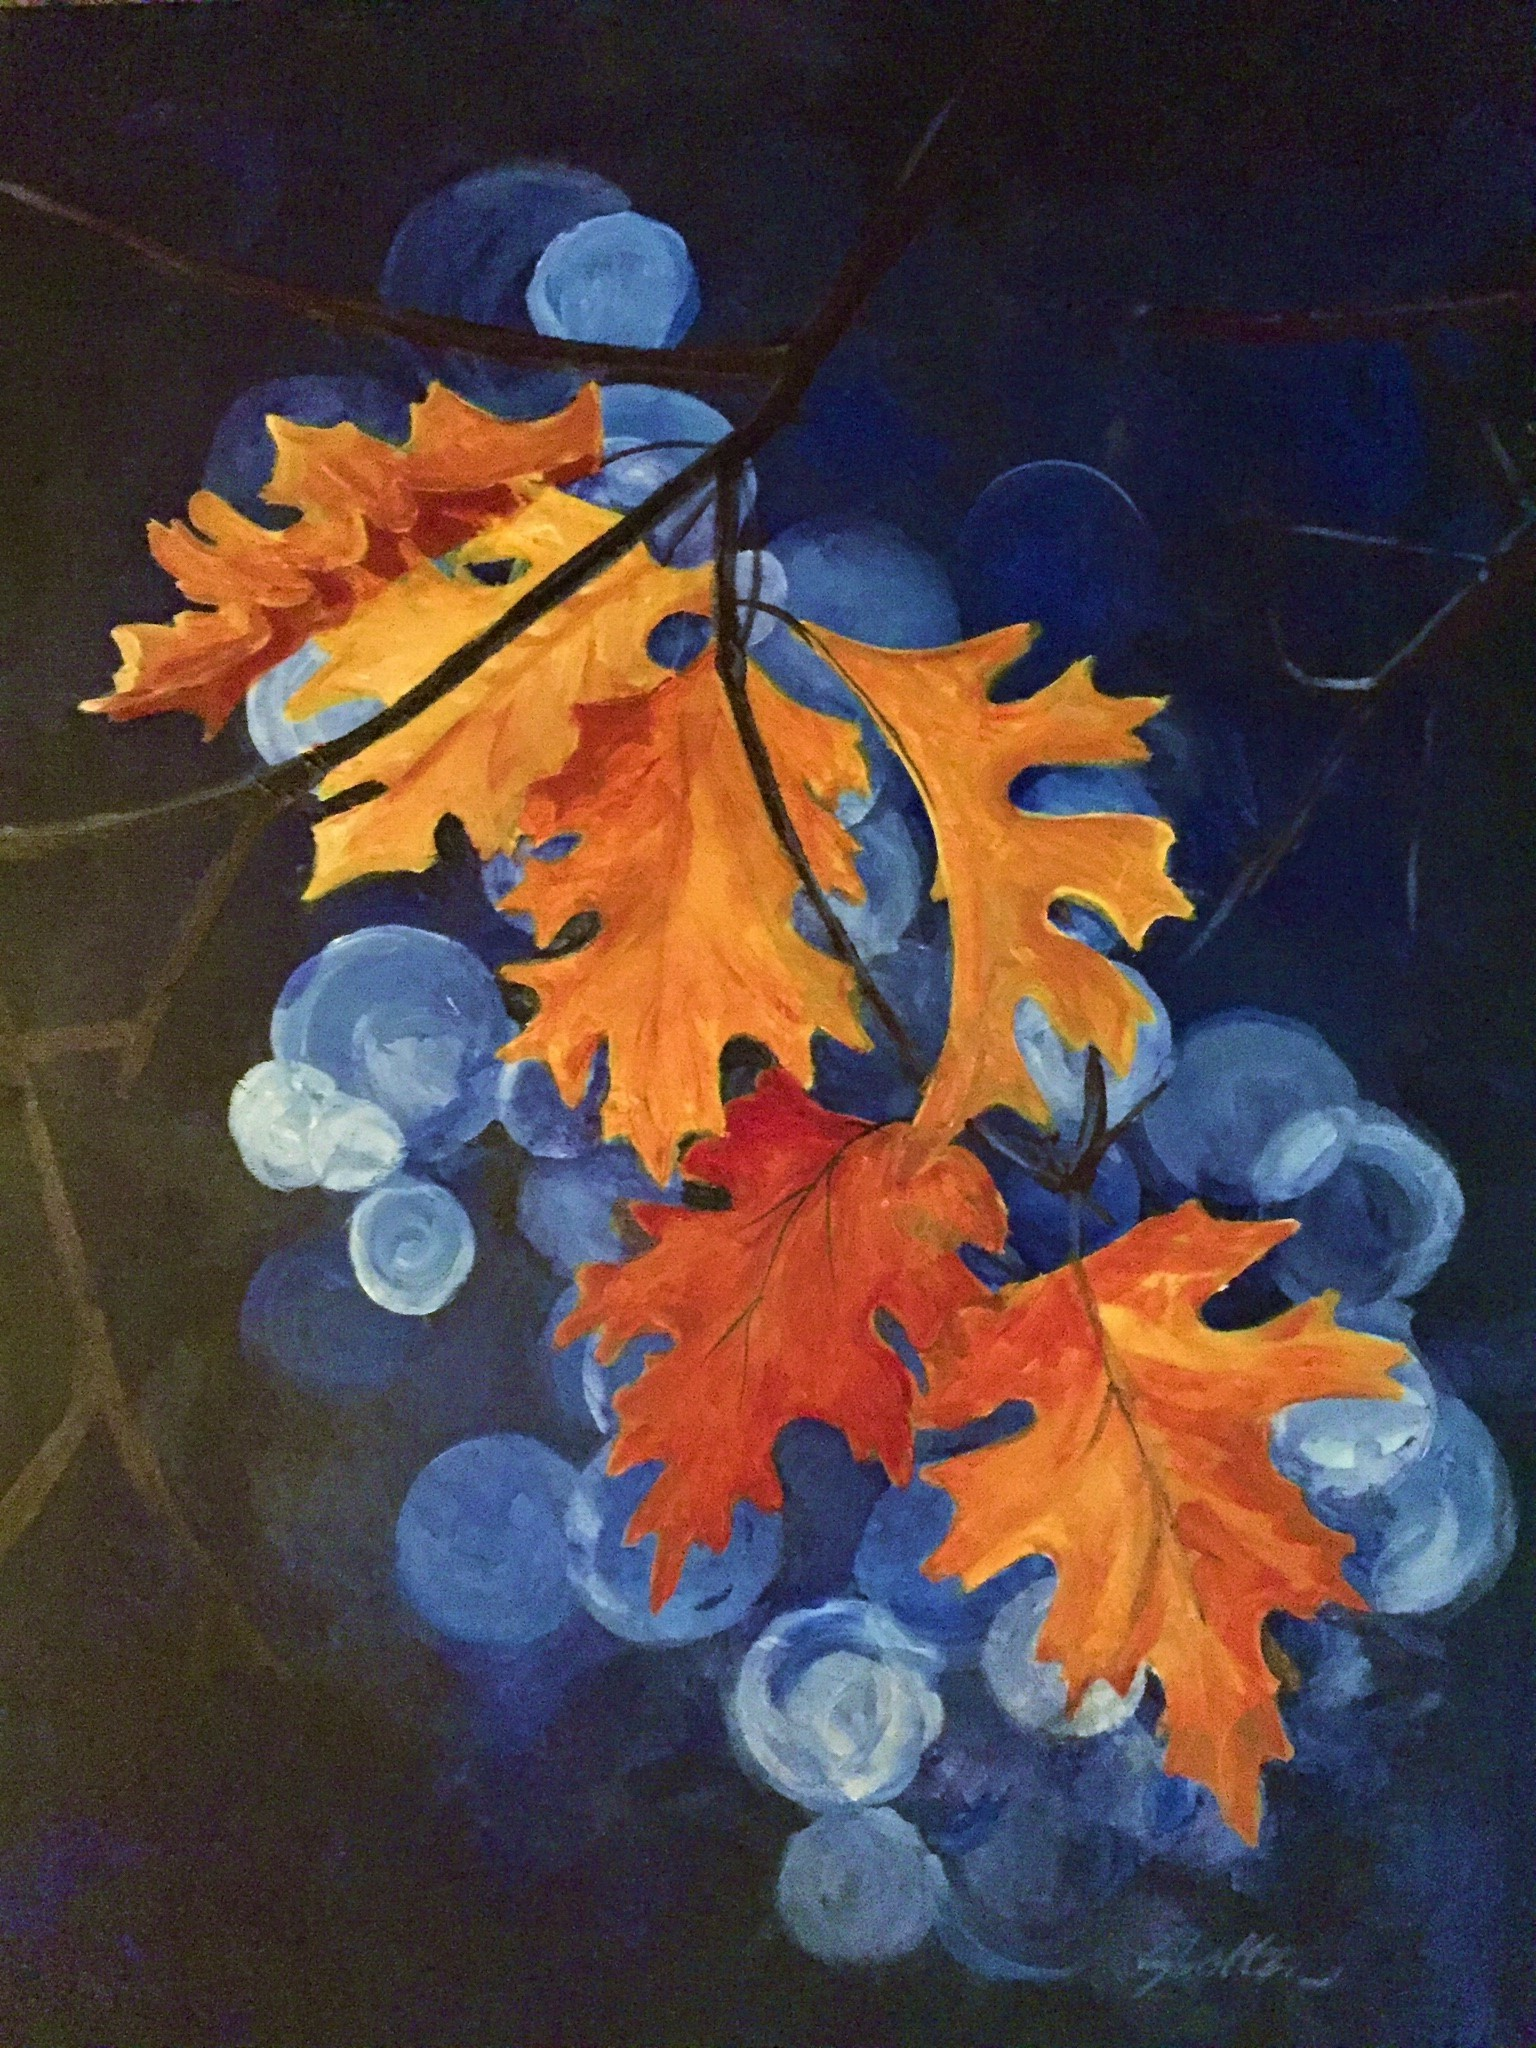 OAK LEAVES....holding on to life on a cold fall night. Out of focus blue lights enhance the golden fall leaves, popping the color.   18x 24   Fall 2015